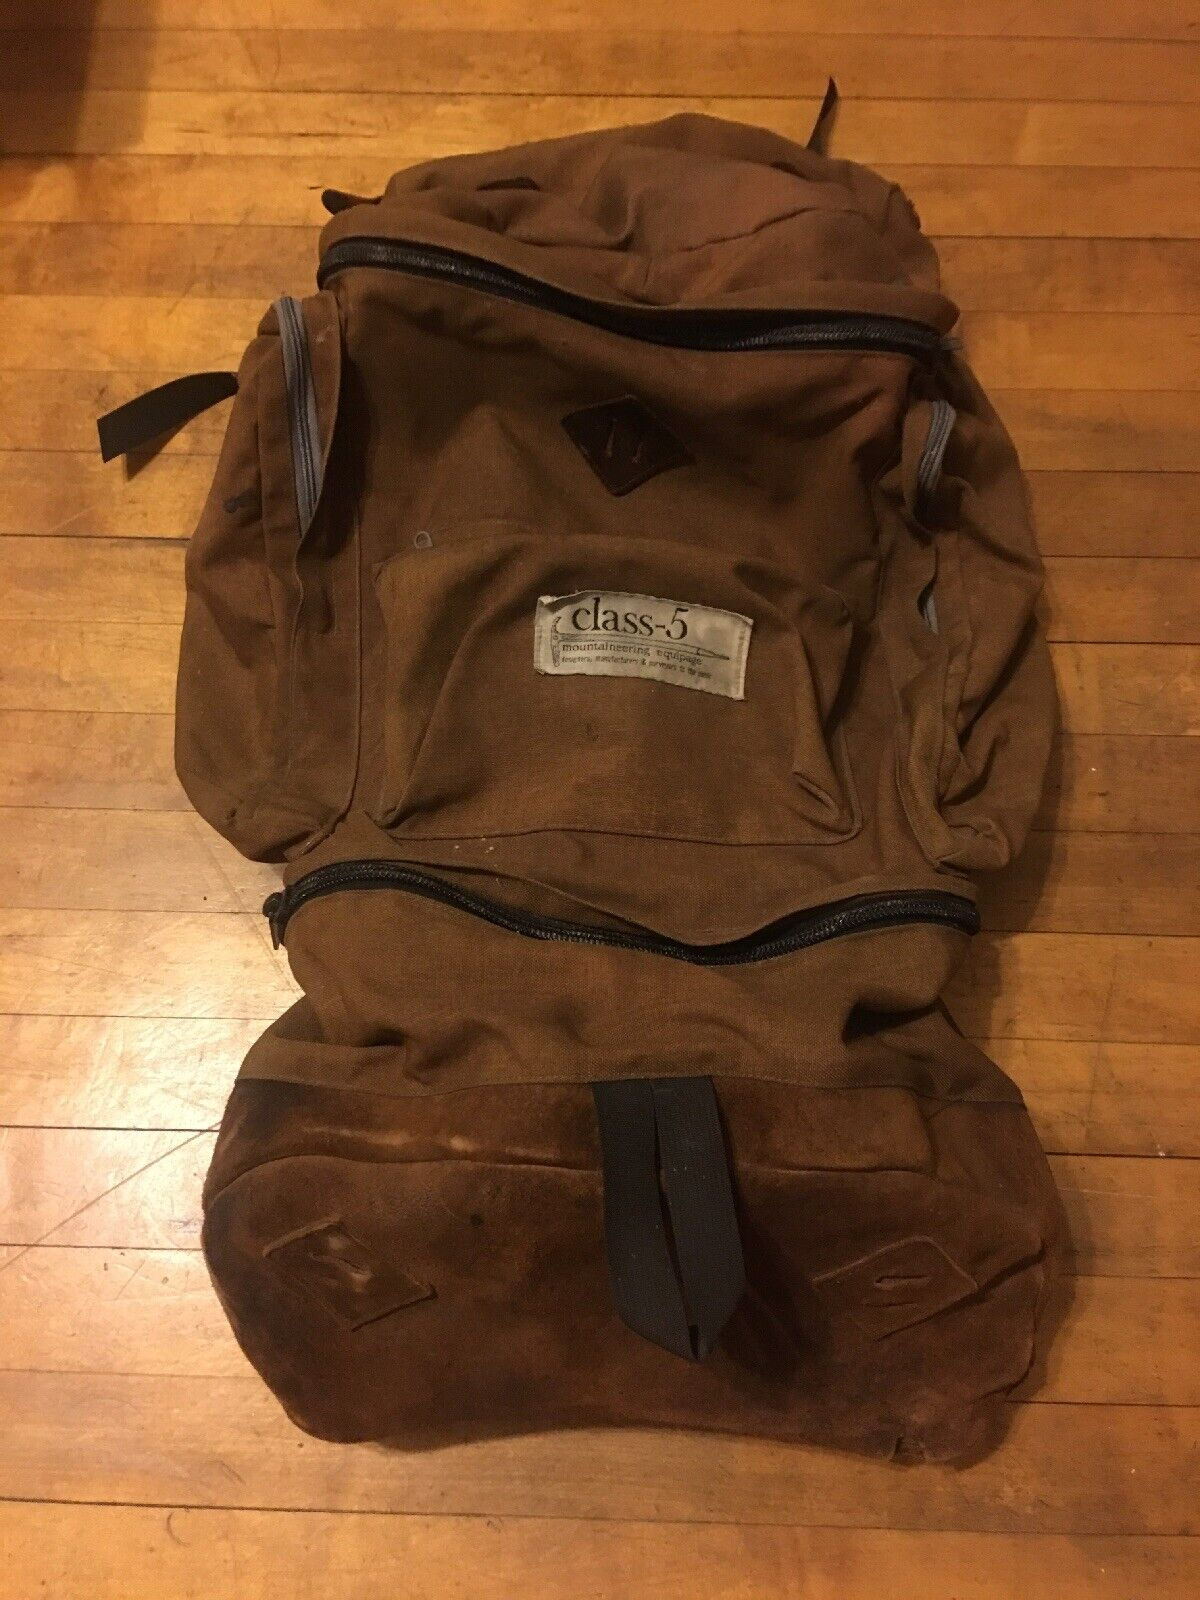 Vintage CLASS-5 Large Backpack Multiday Pack Brown Leather 6 Compartment Canvas